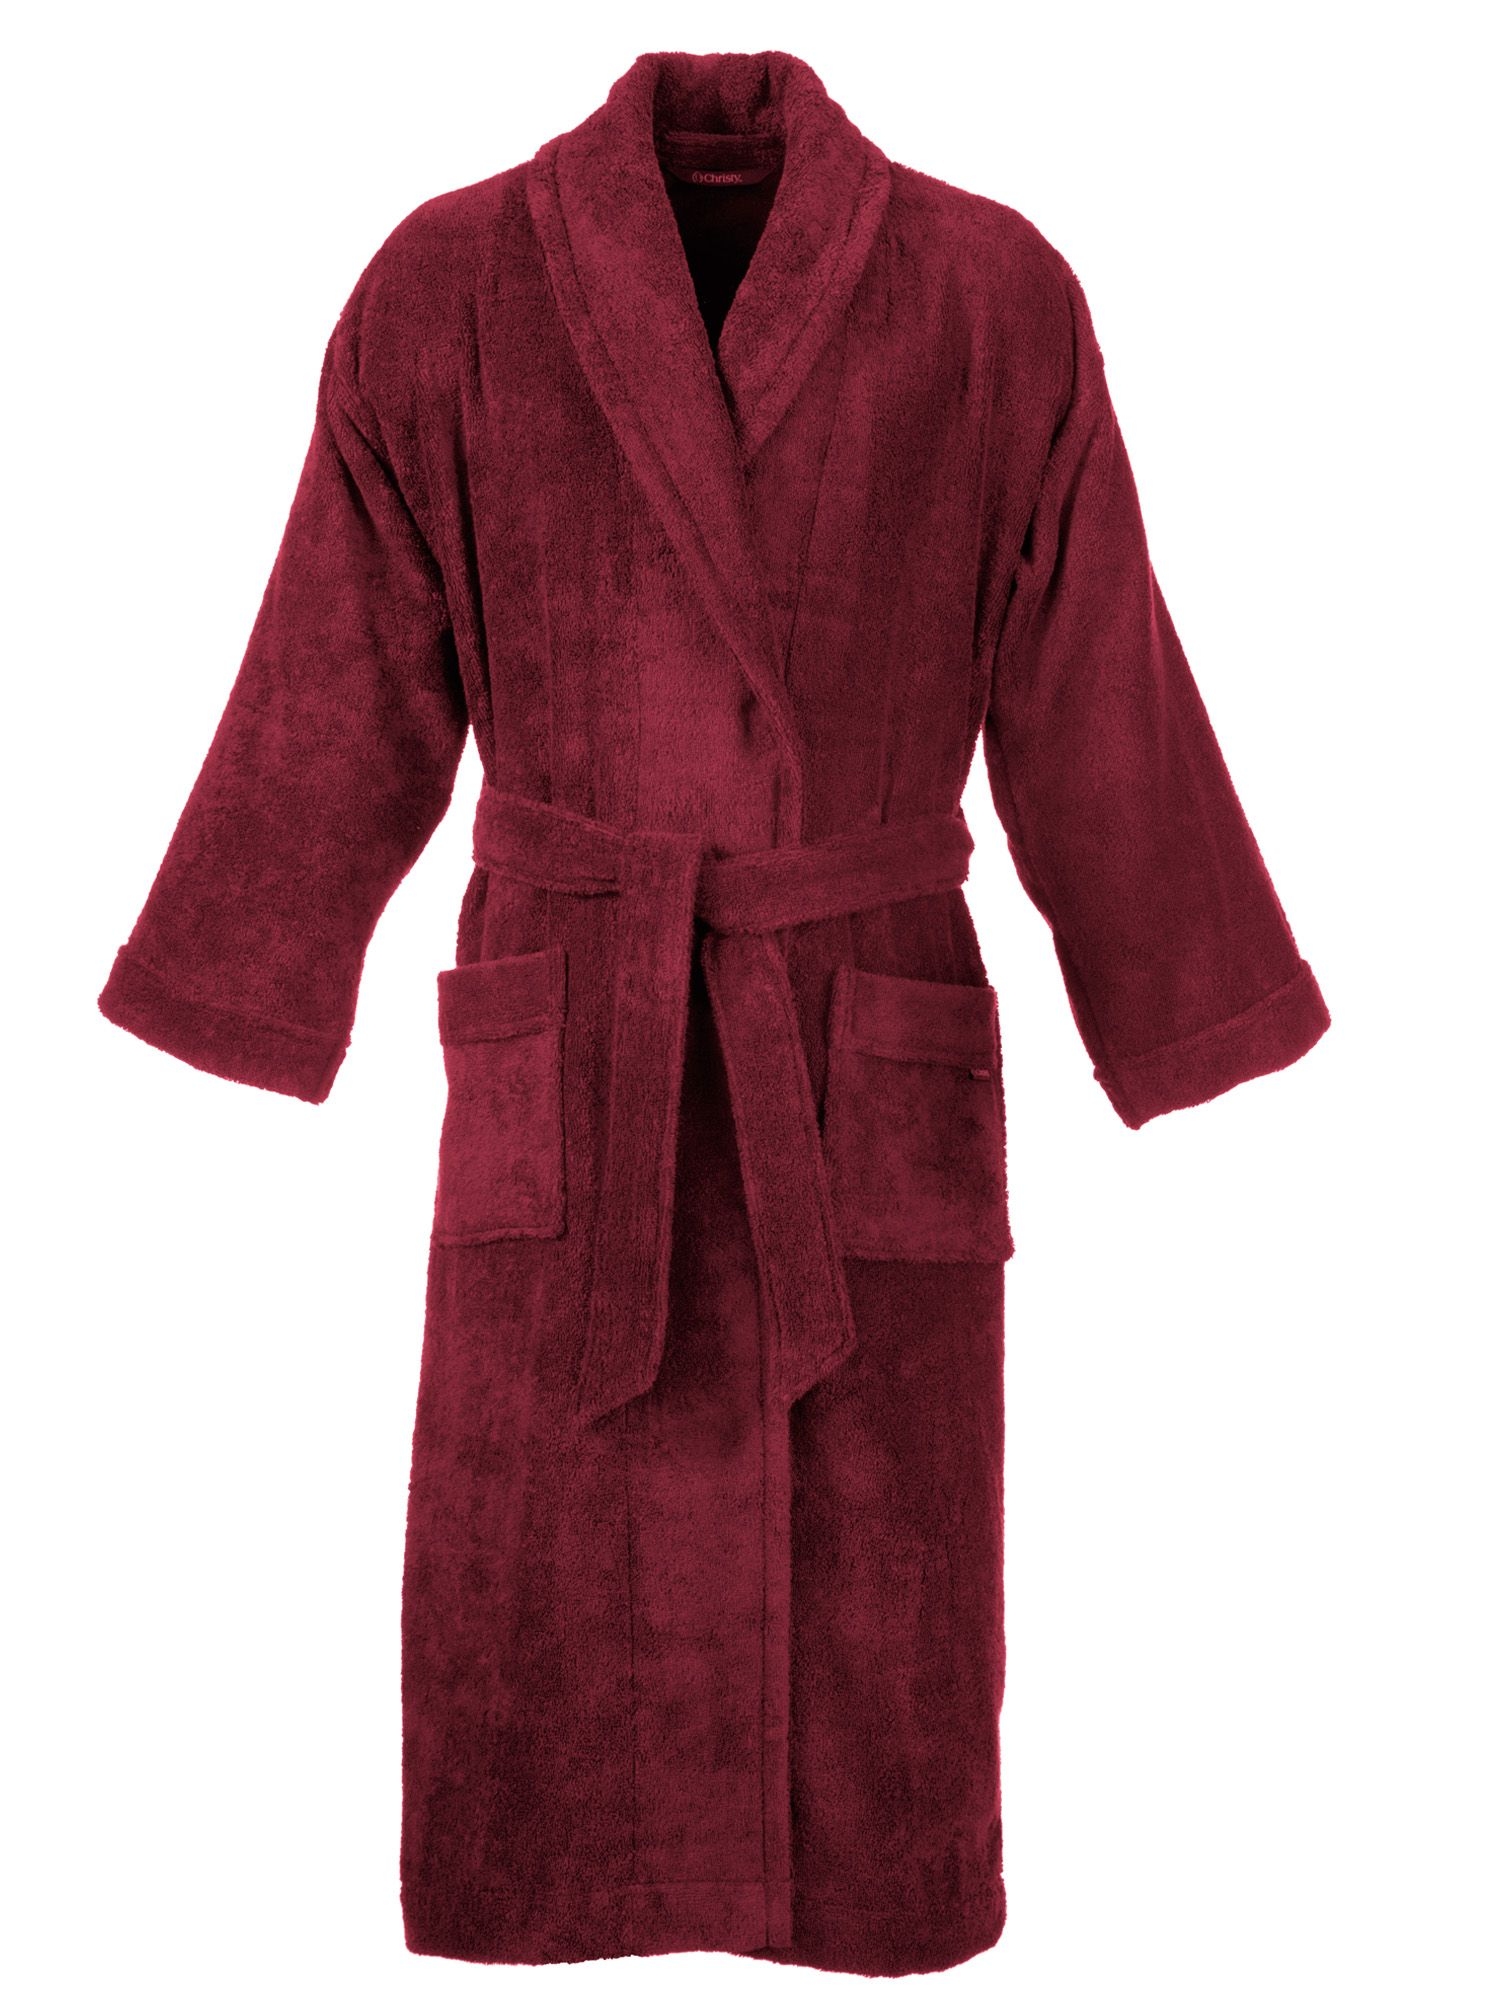 Supreme bath robe in raspberry